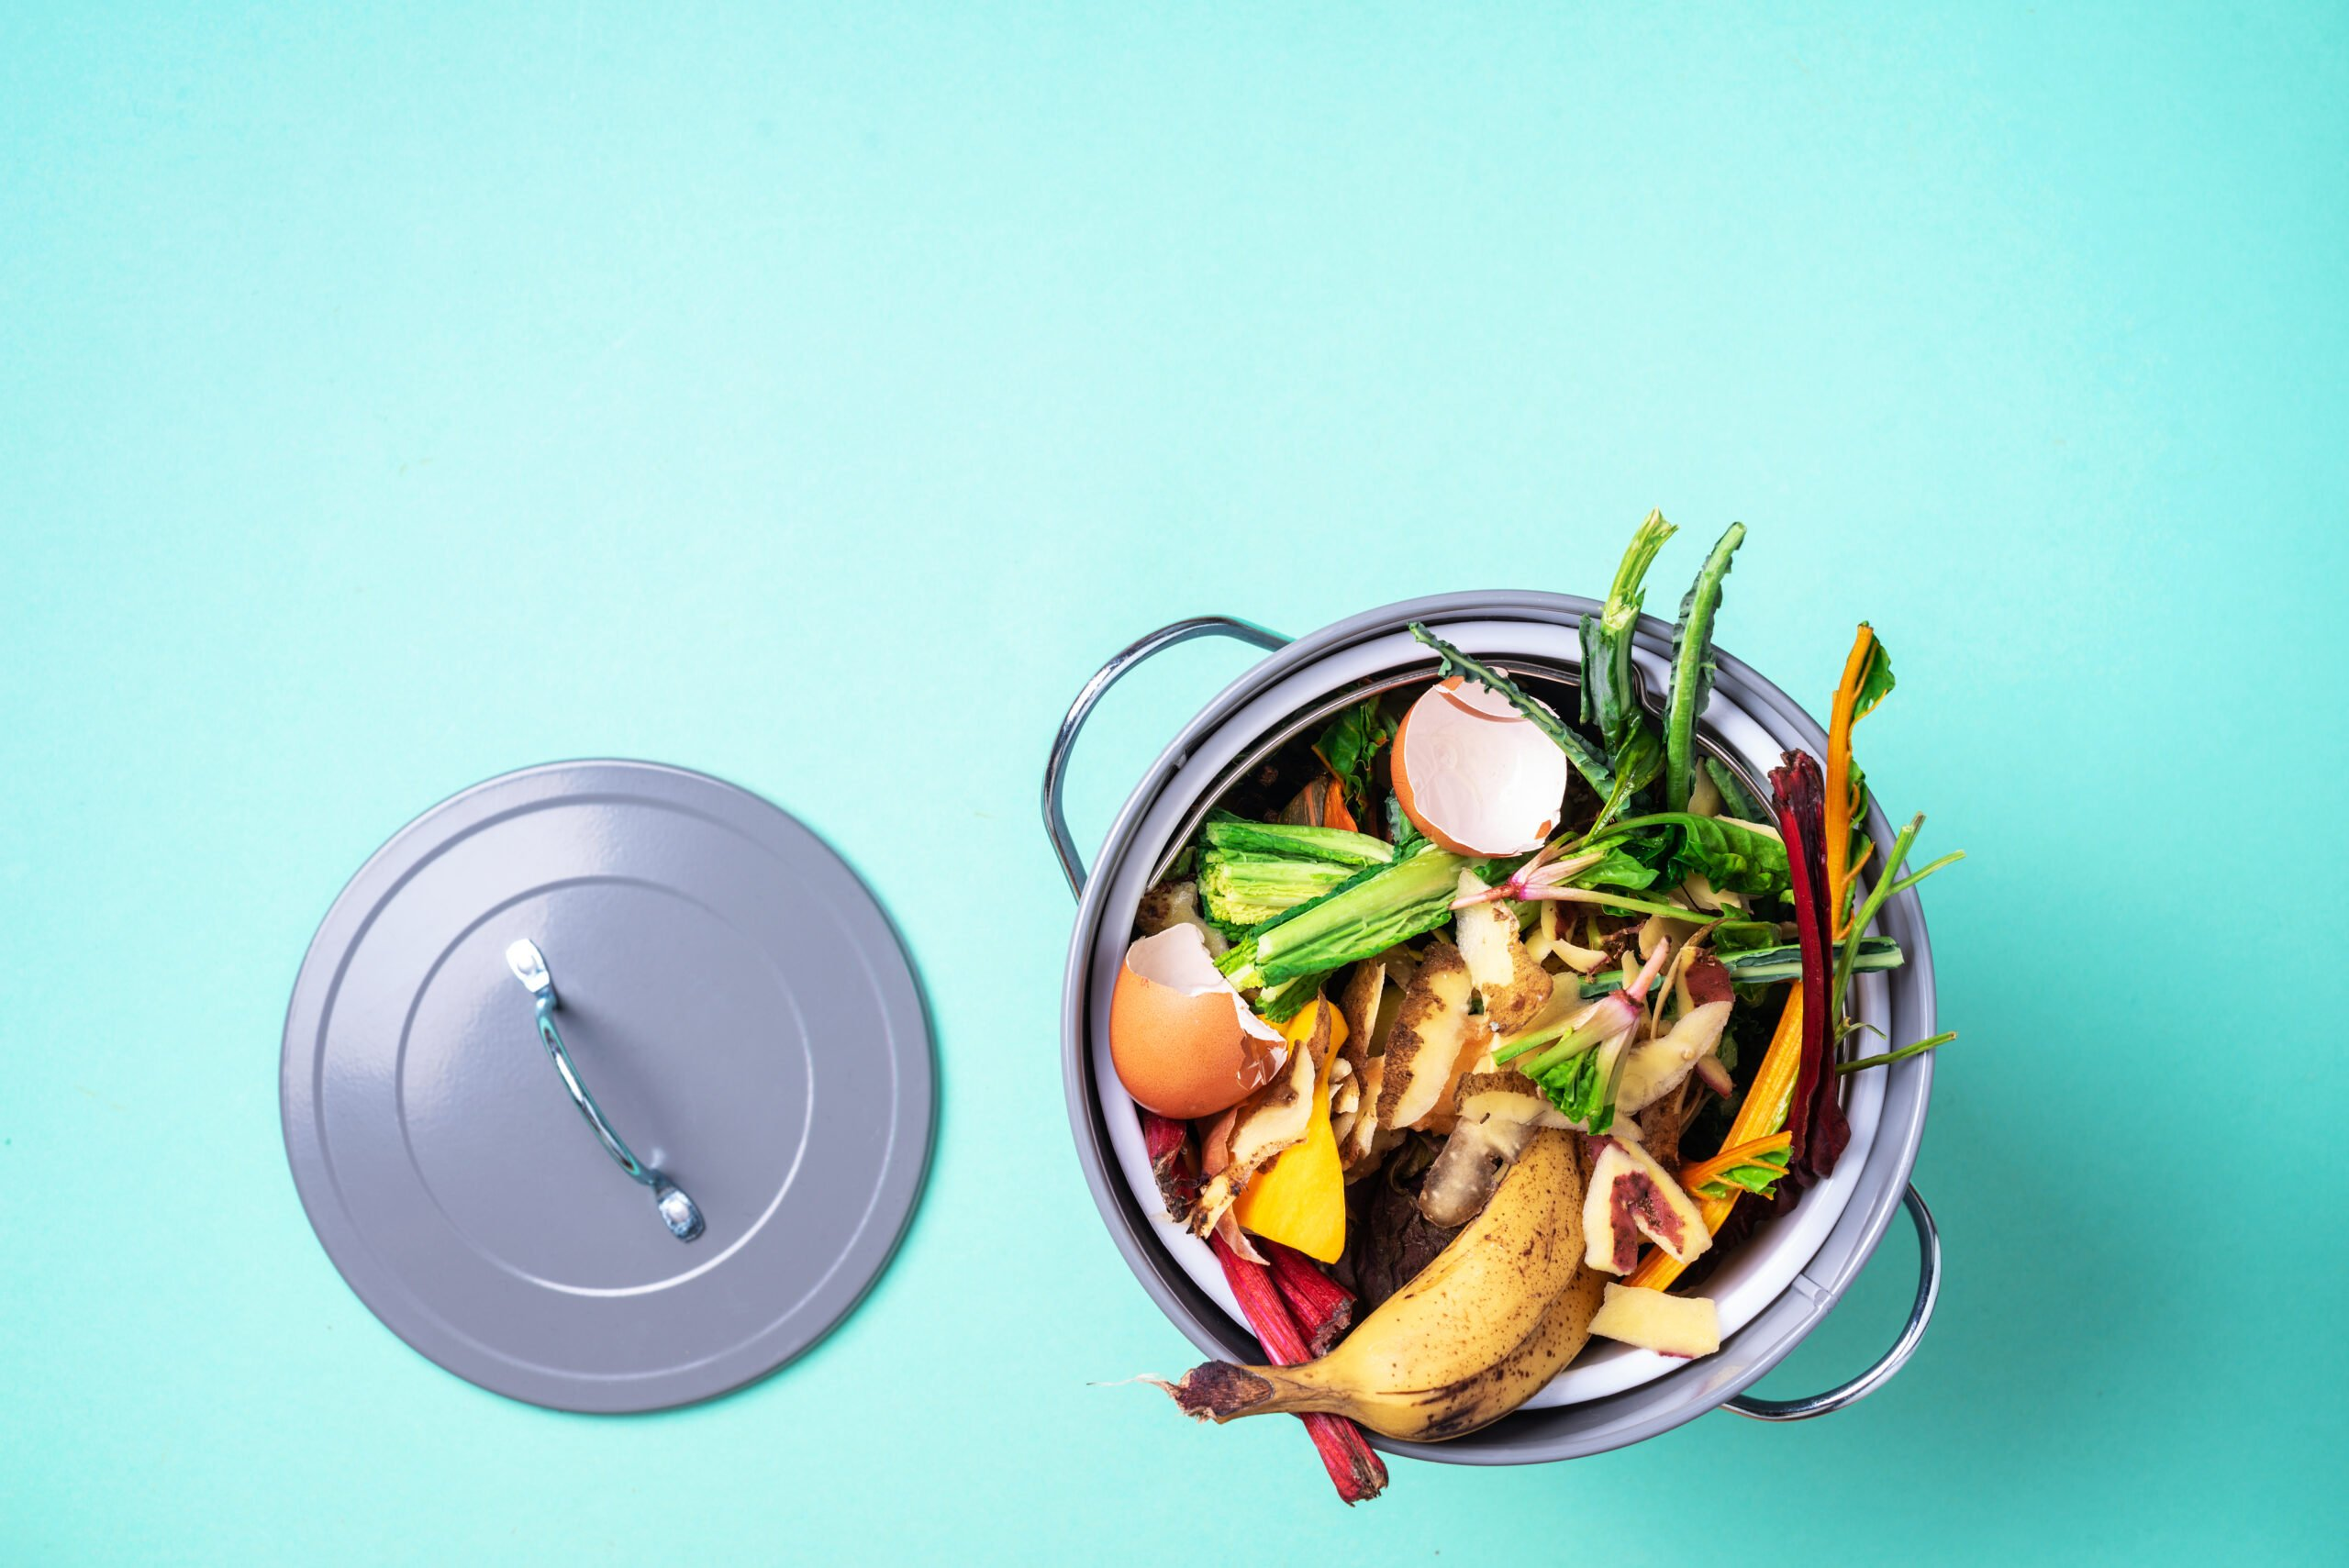 Peeled vegetables on chopping board, white compost bin on blue background. Top view of kitchen food waste collected in recycling compost pot.